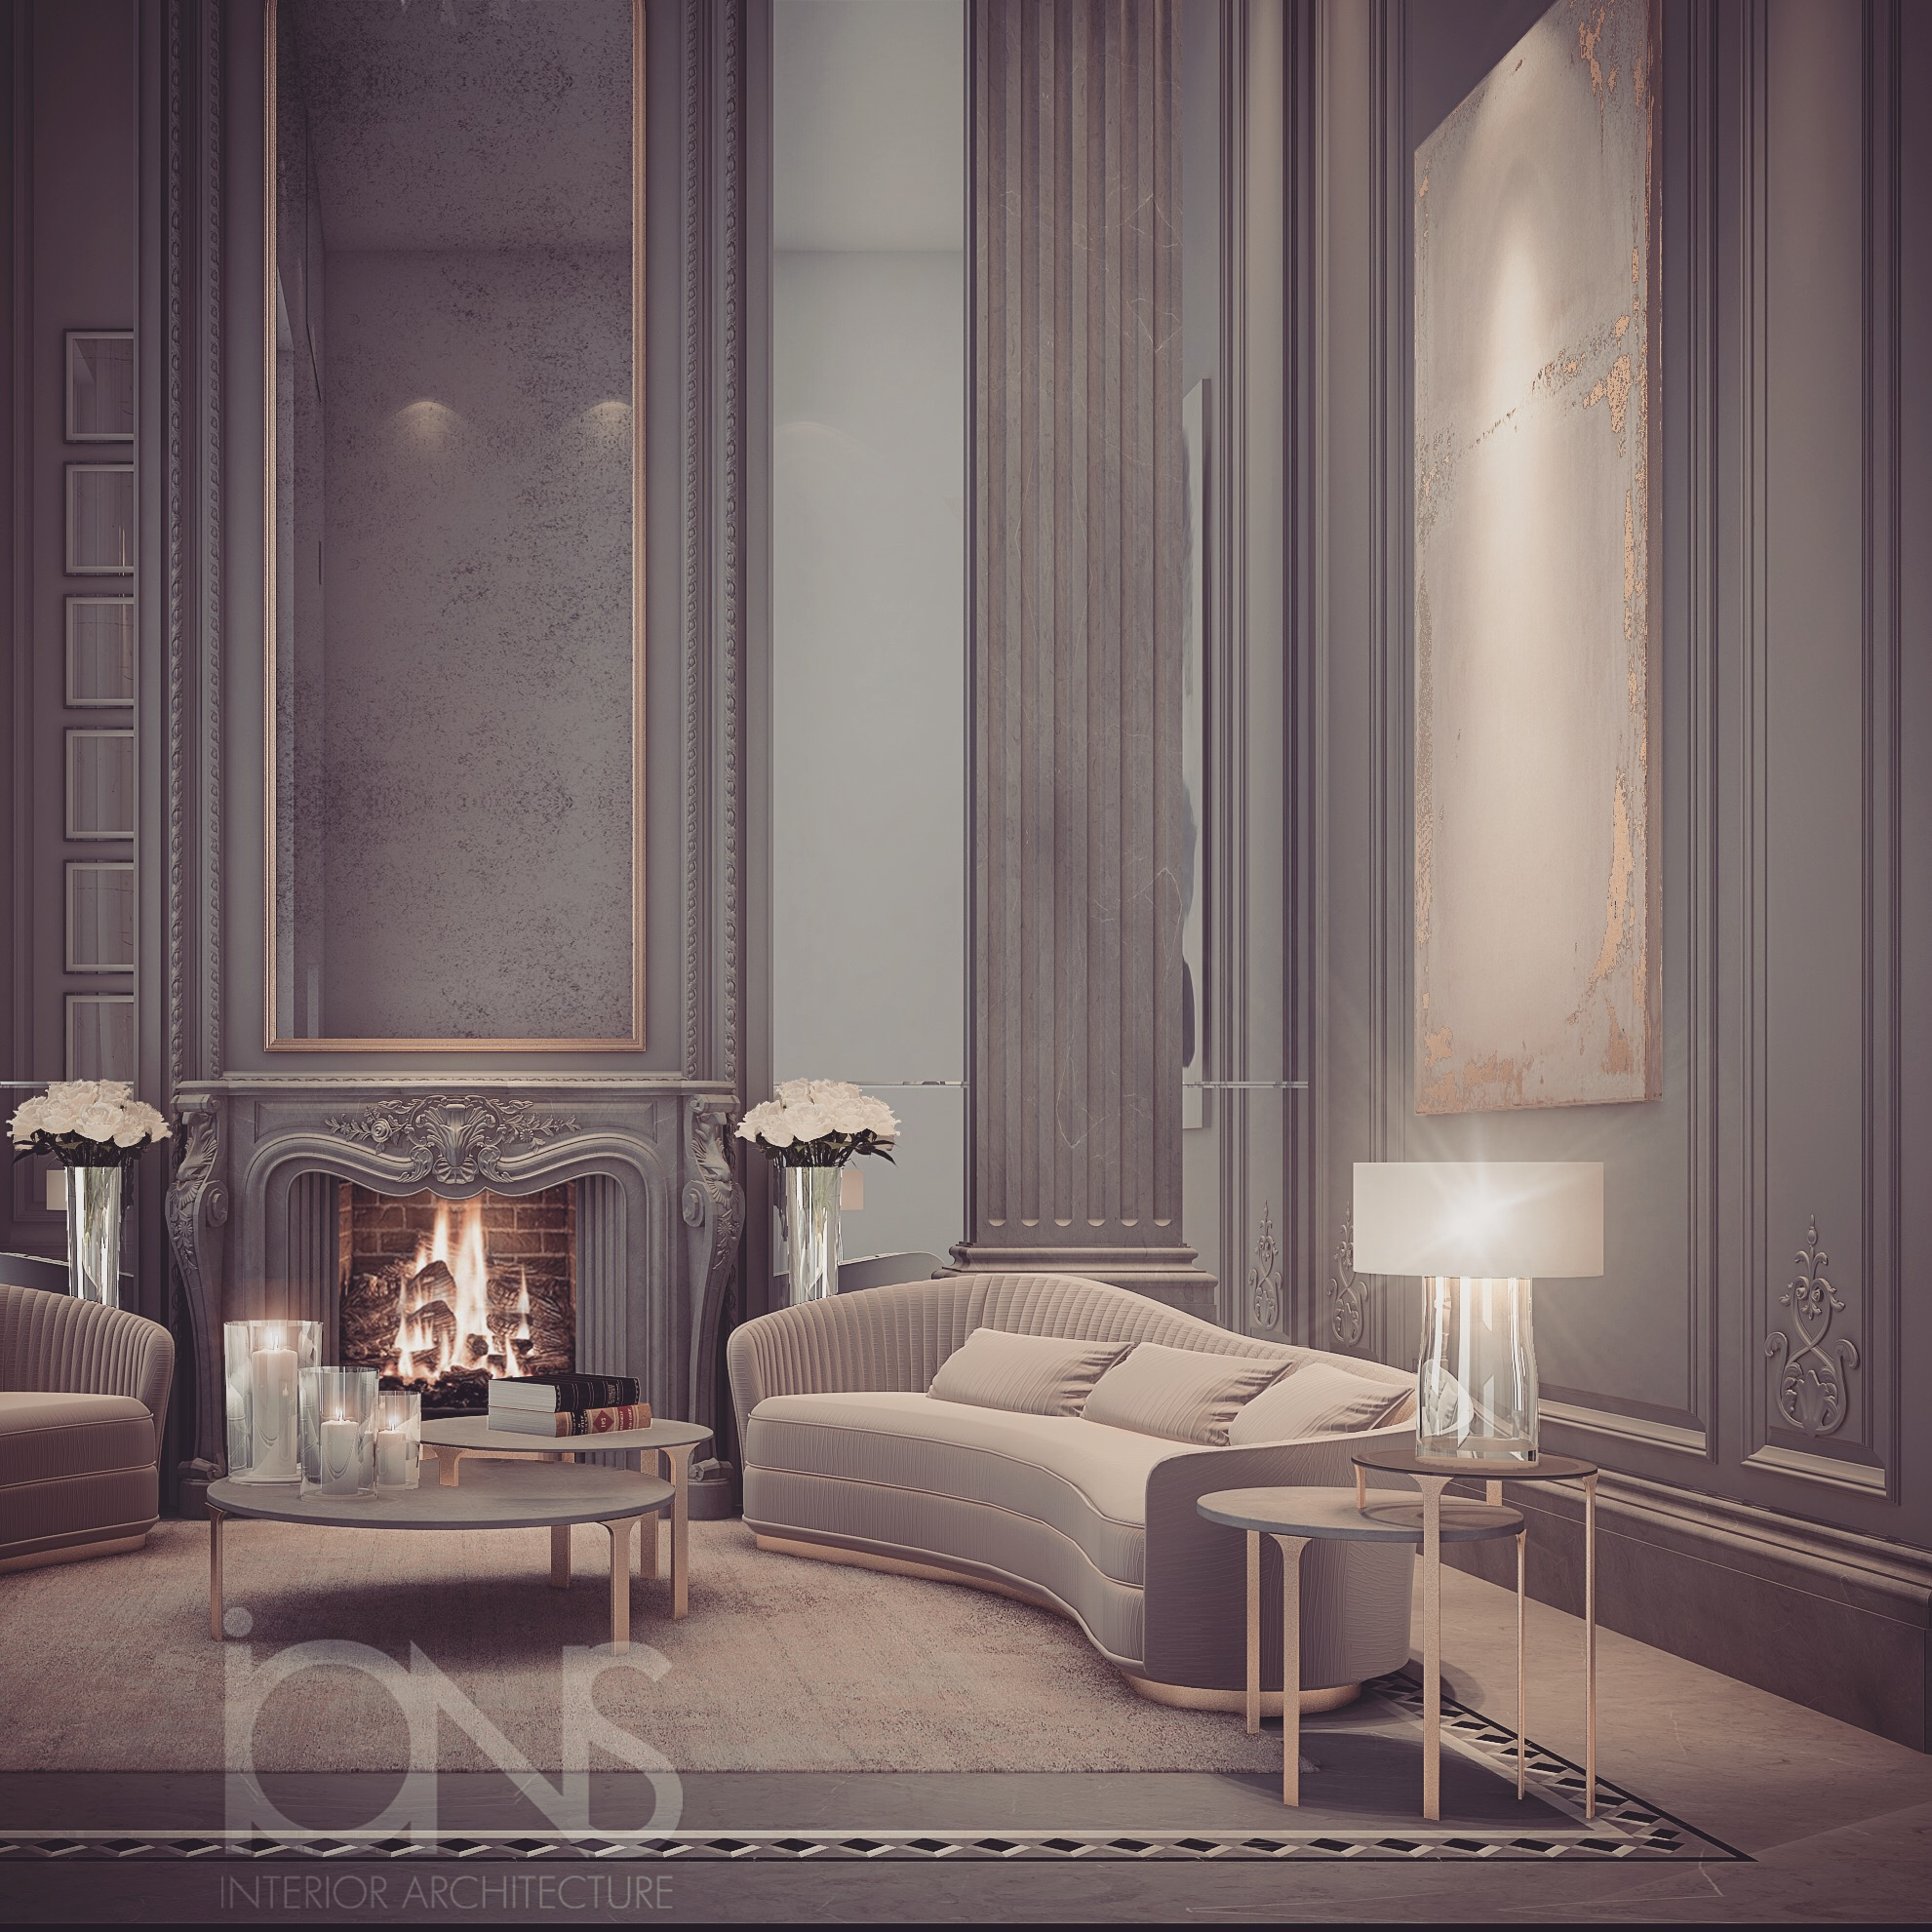 Ions Interior Design Dubai luxury villa interior design dubai uae – samyysandra